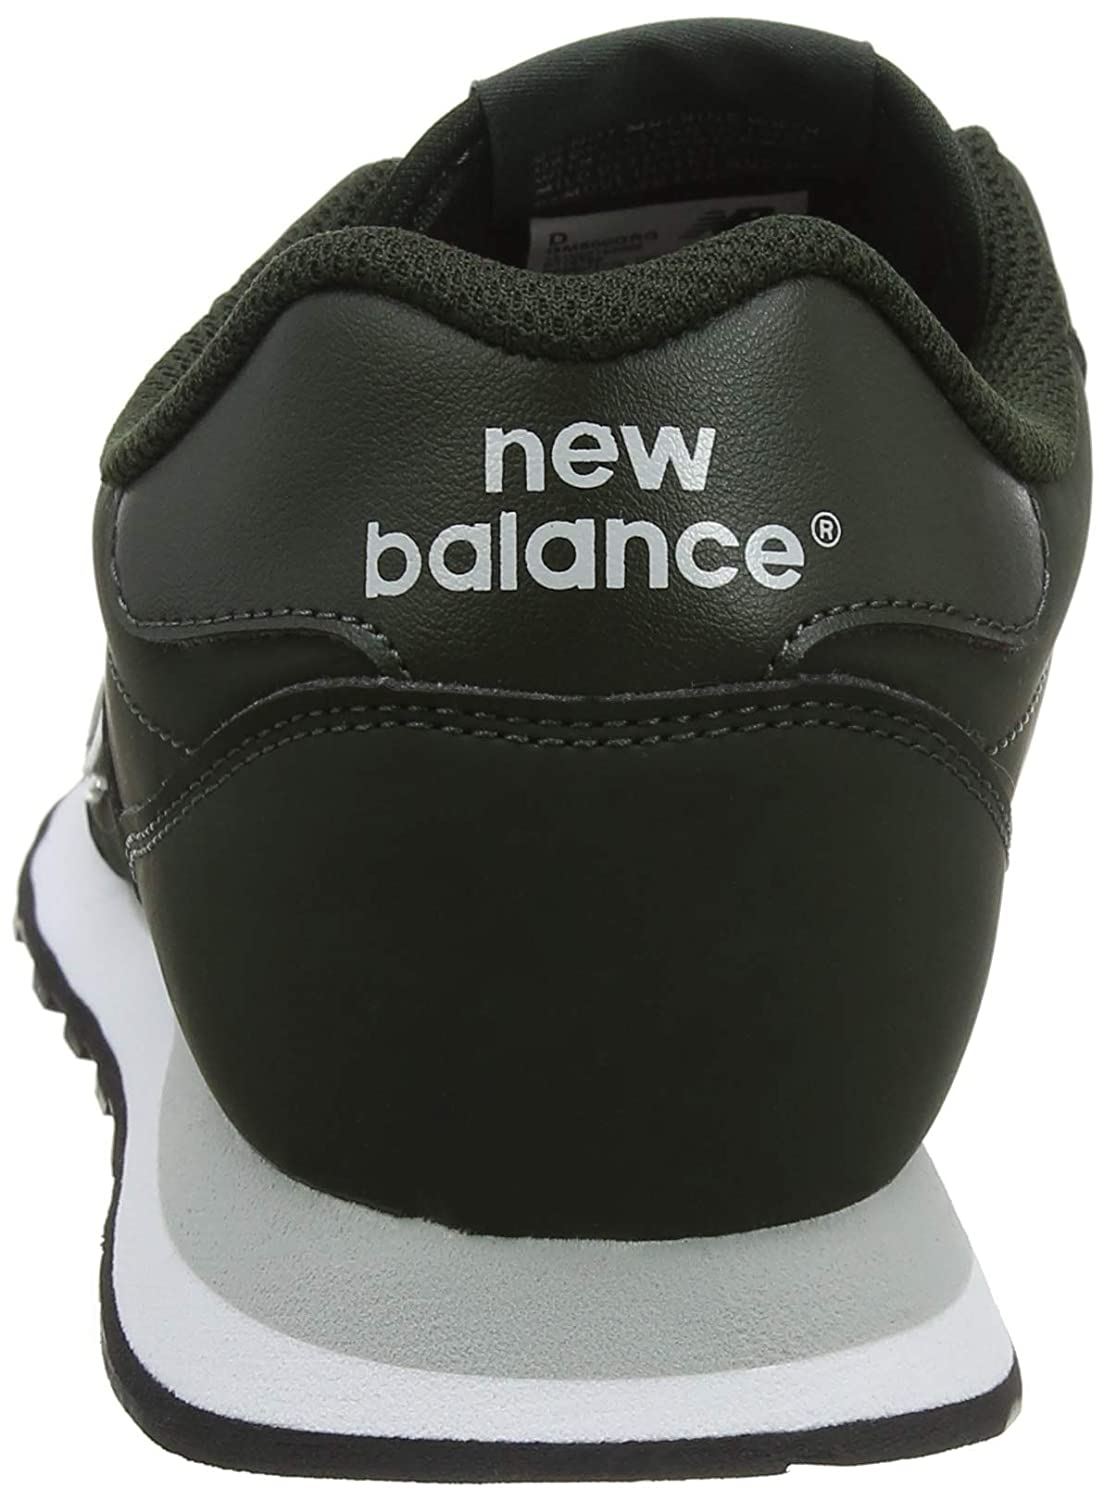 premium selection 431aa f8b27 New Balance Men s 500 Trainers  Amazon.co.uk  Shoes   Bags